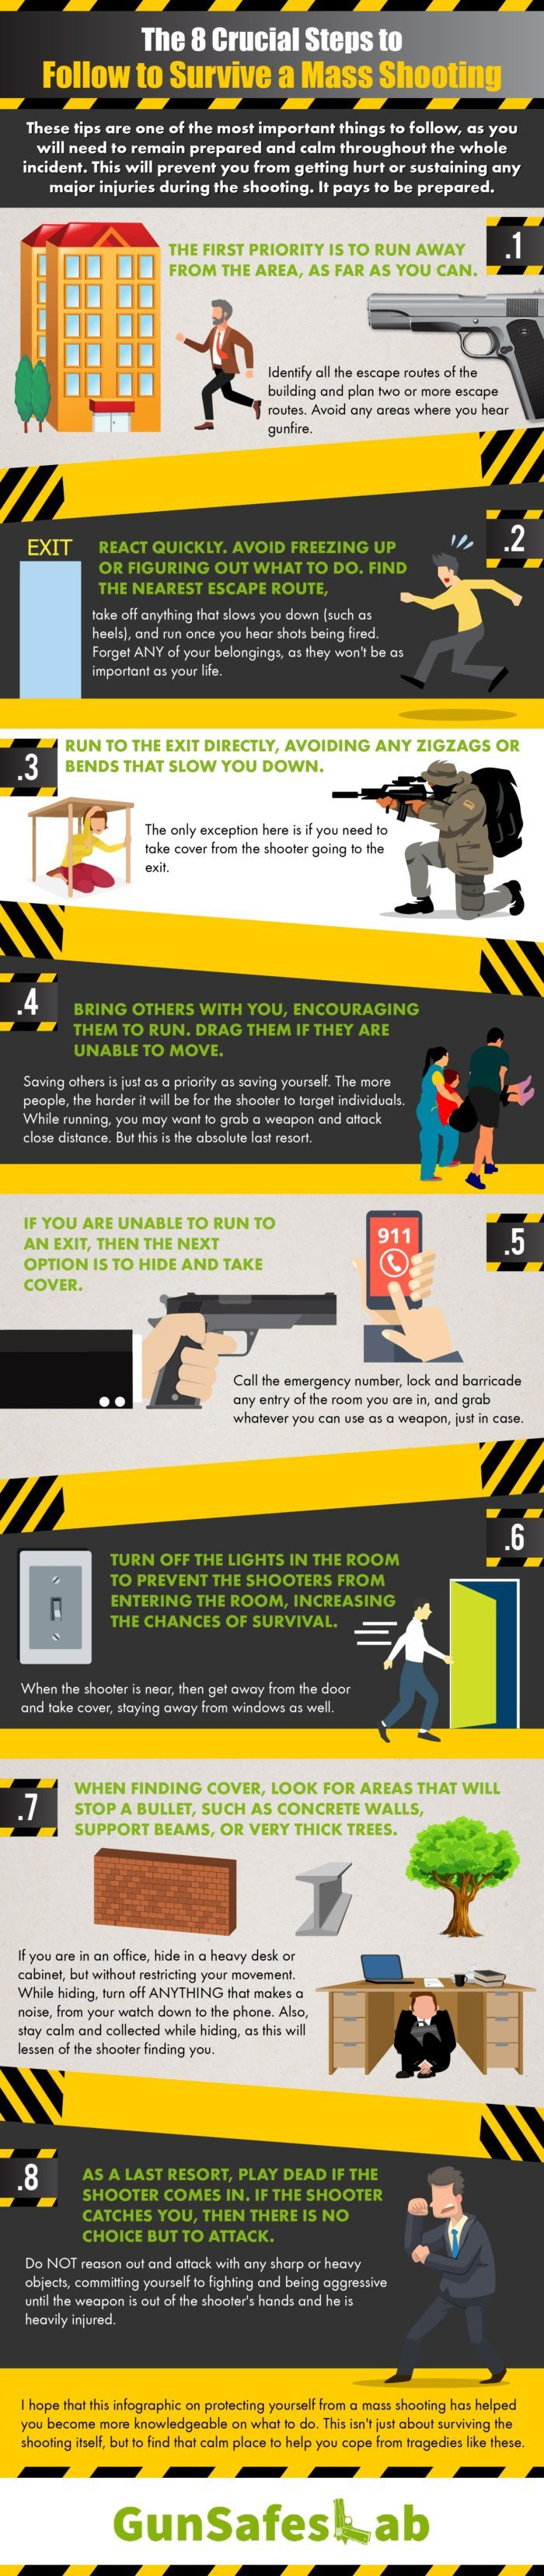 The 8 Crucial Steps to Follow to Survive a Mass Shooting